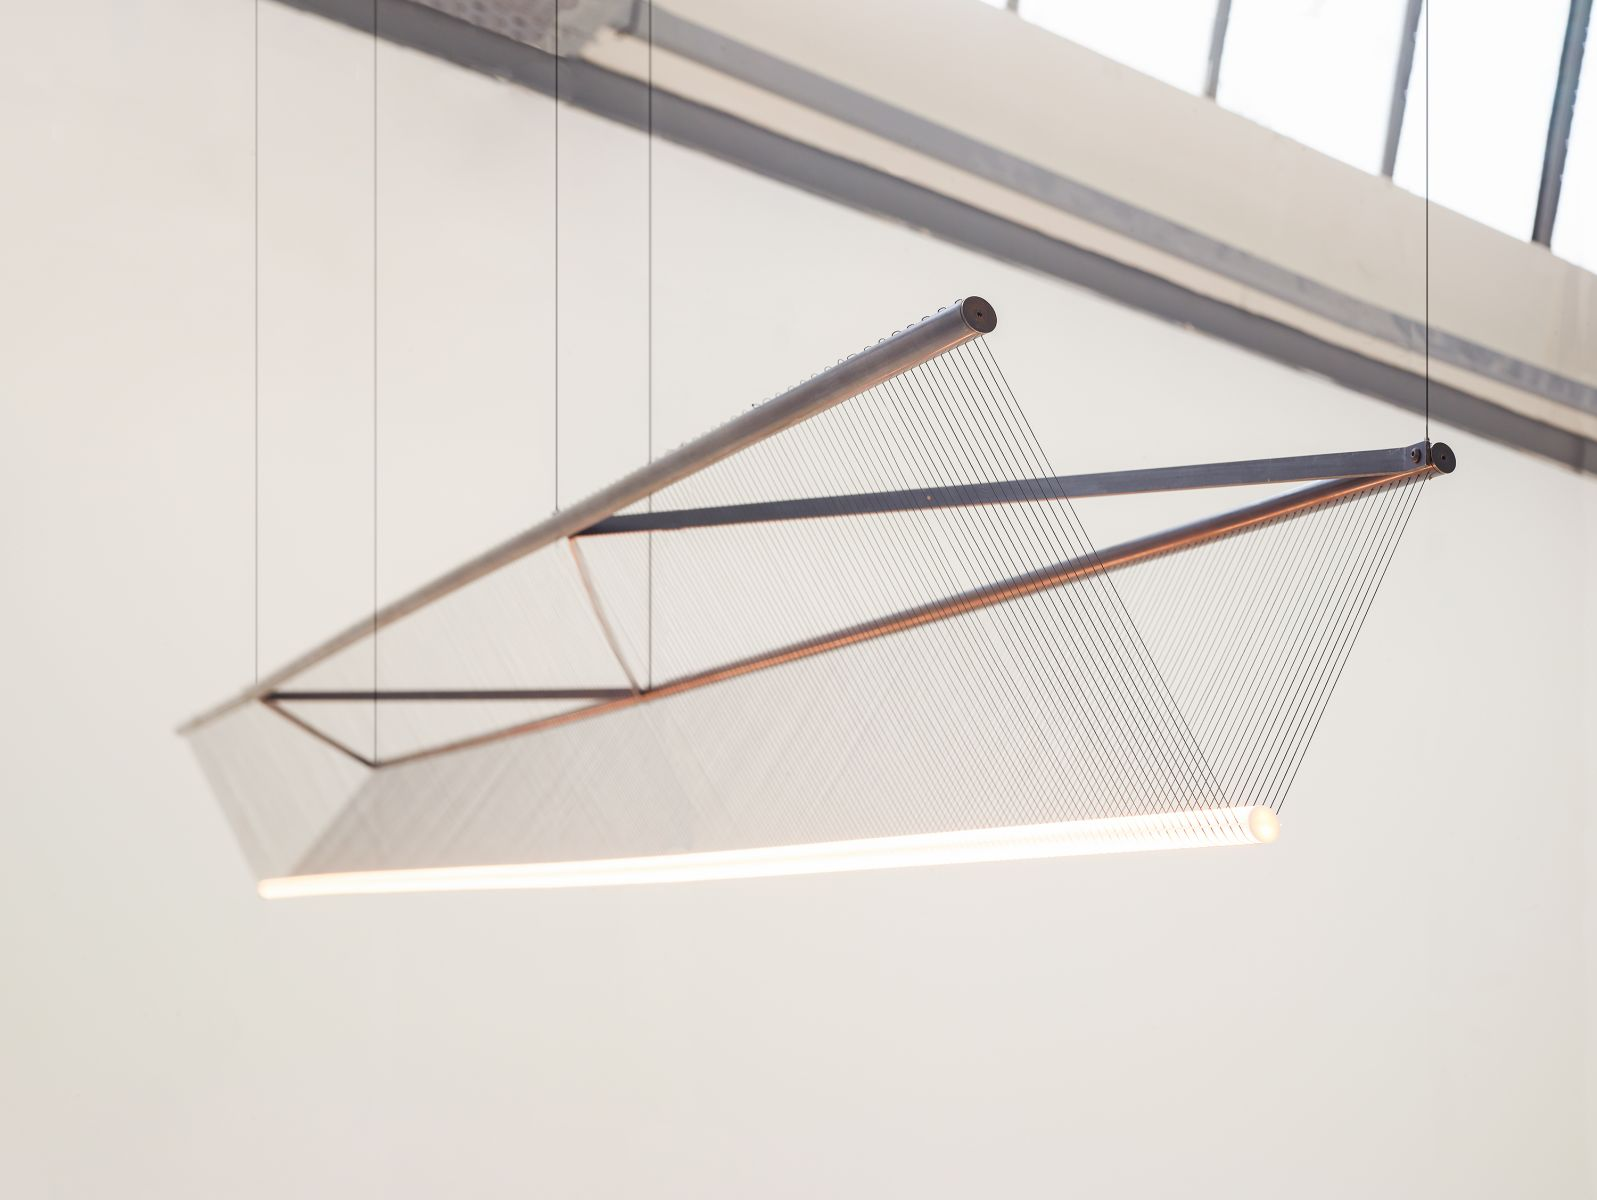 Spun Beam by Umut Yamac. Patinated brass, thread, stainless steel